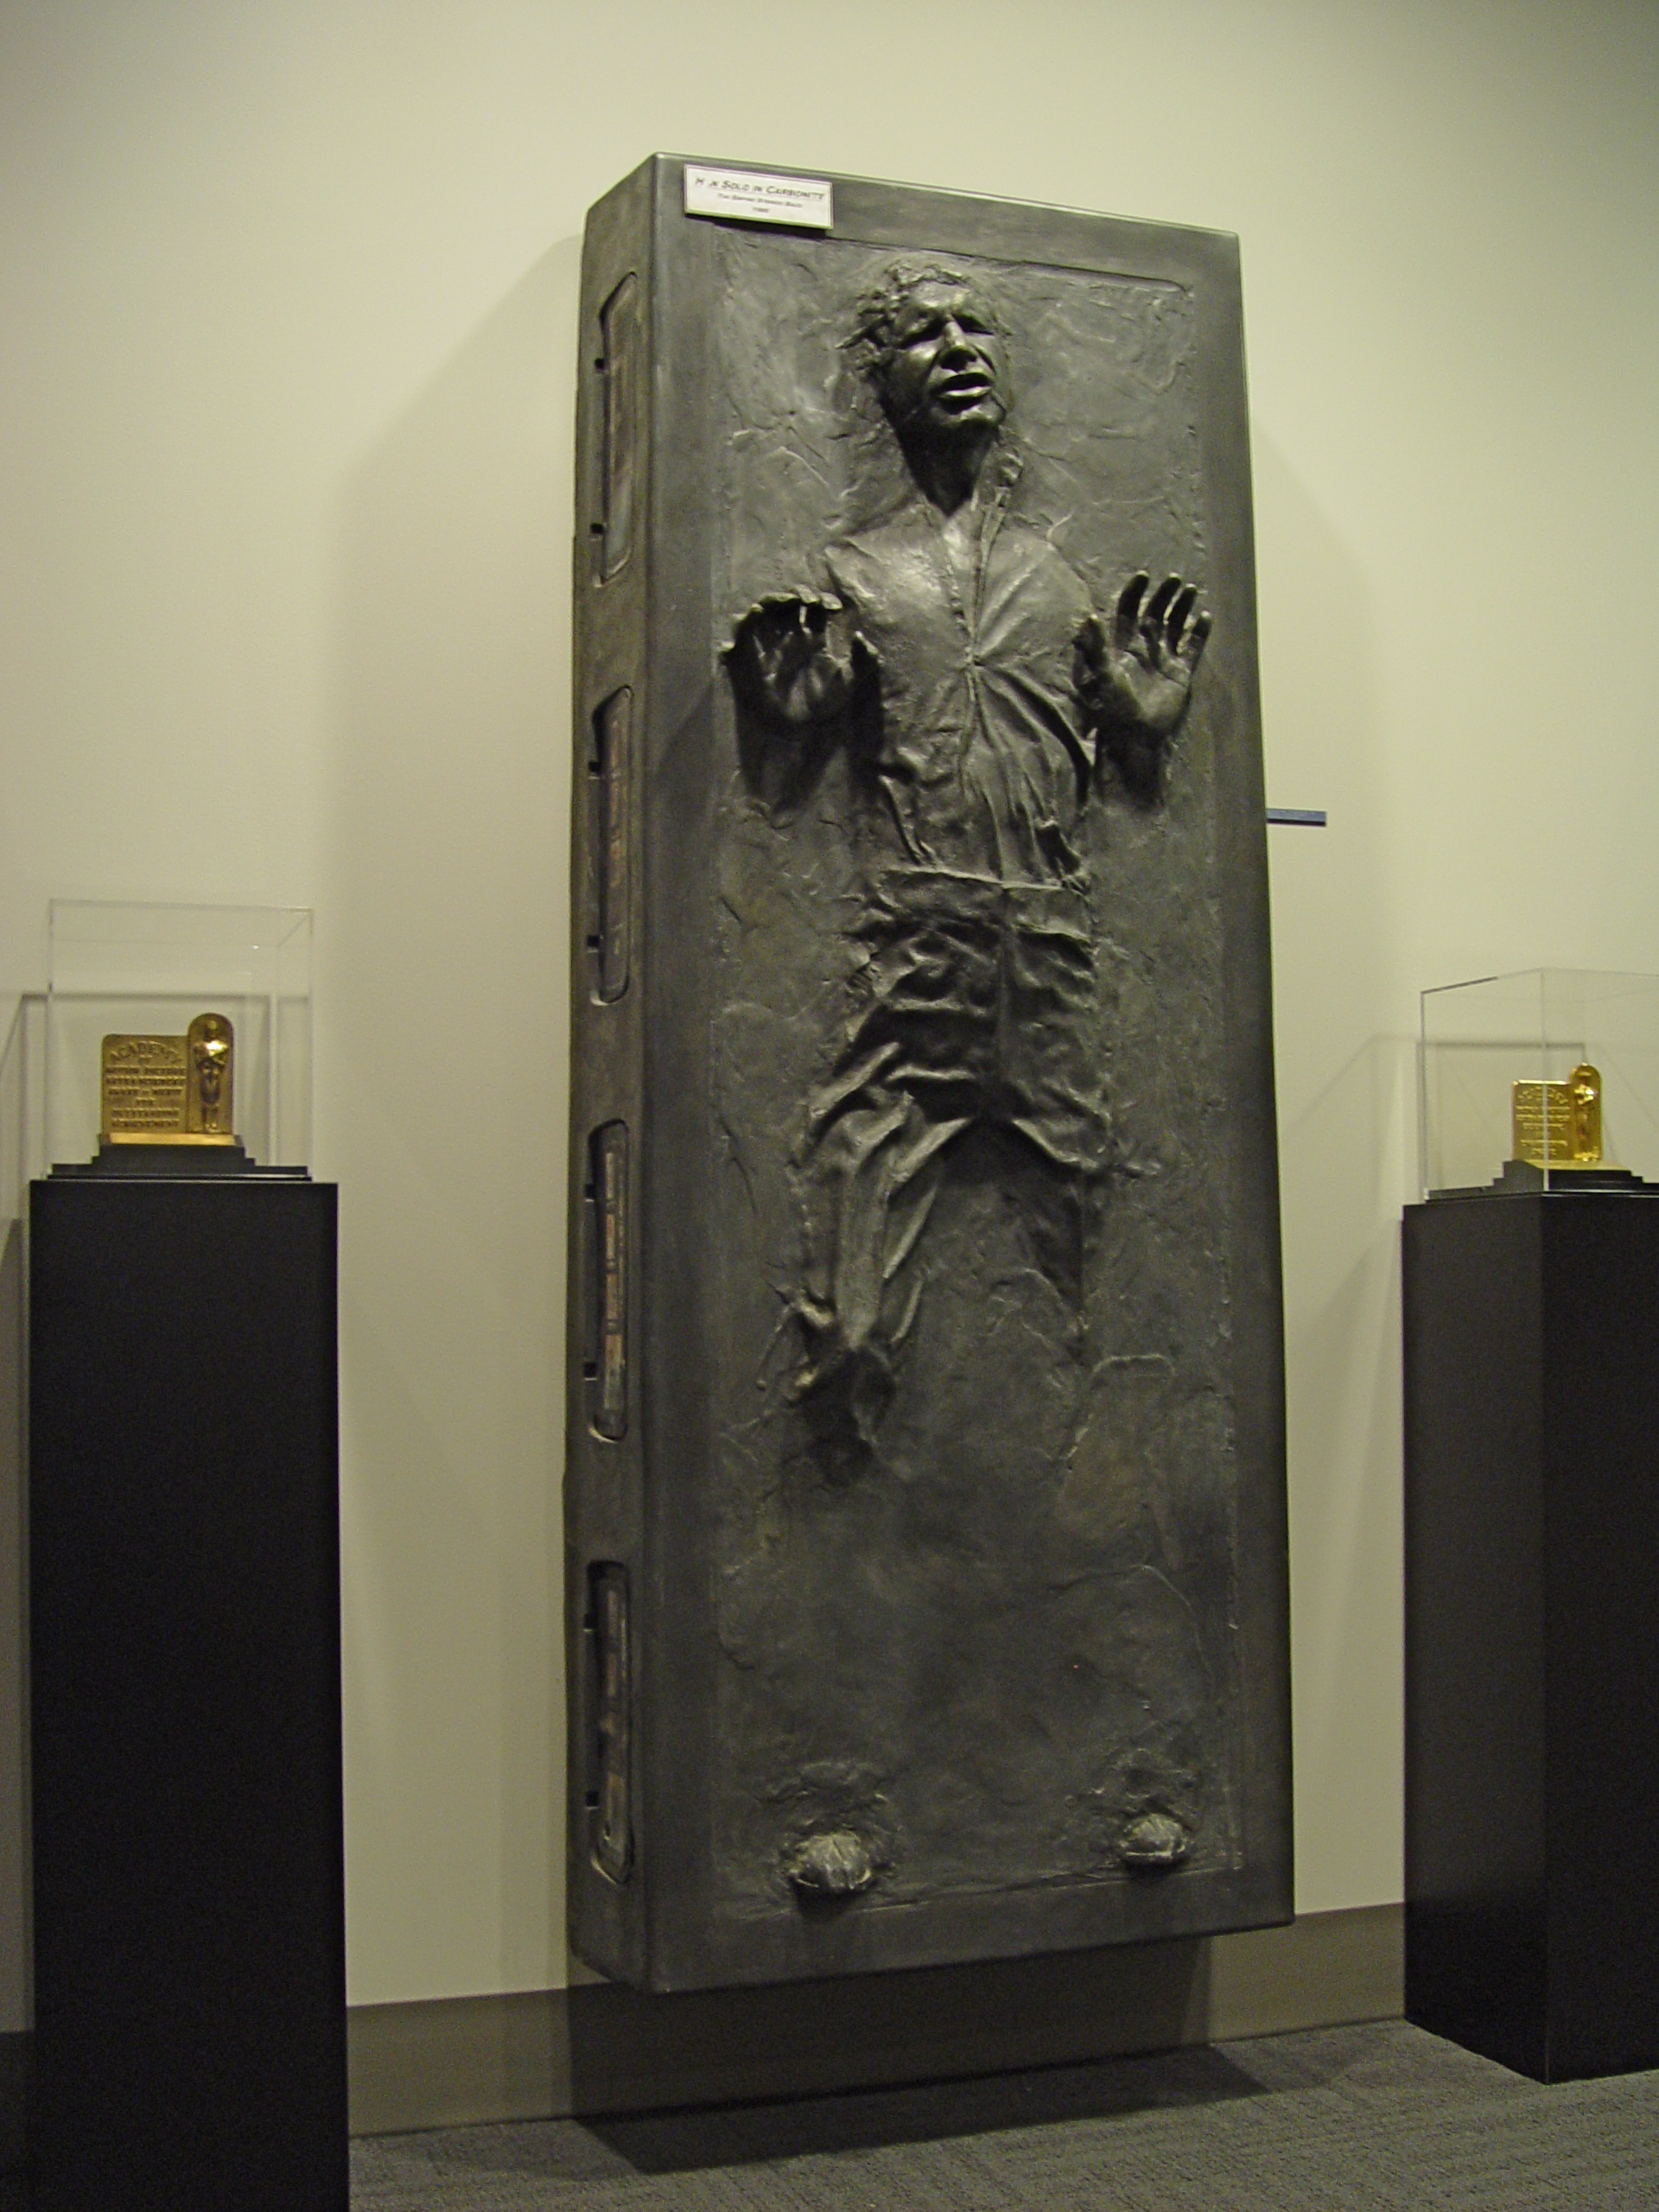 Is There A 11 Print Out Of Han Solo In Carbonite